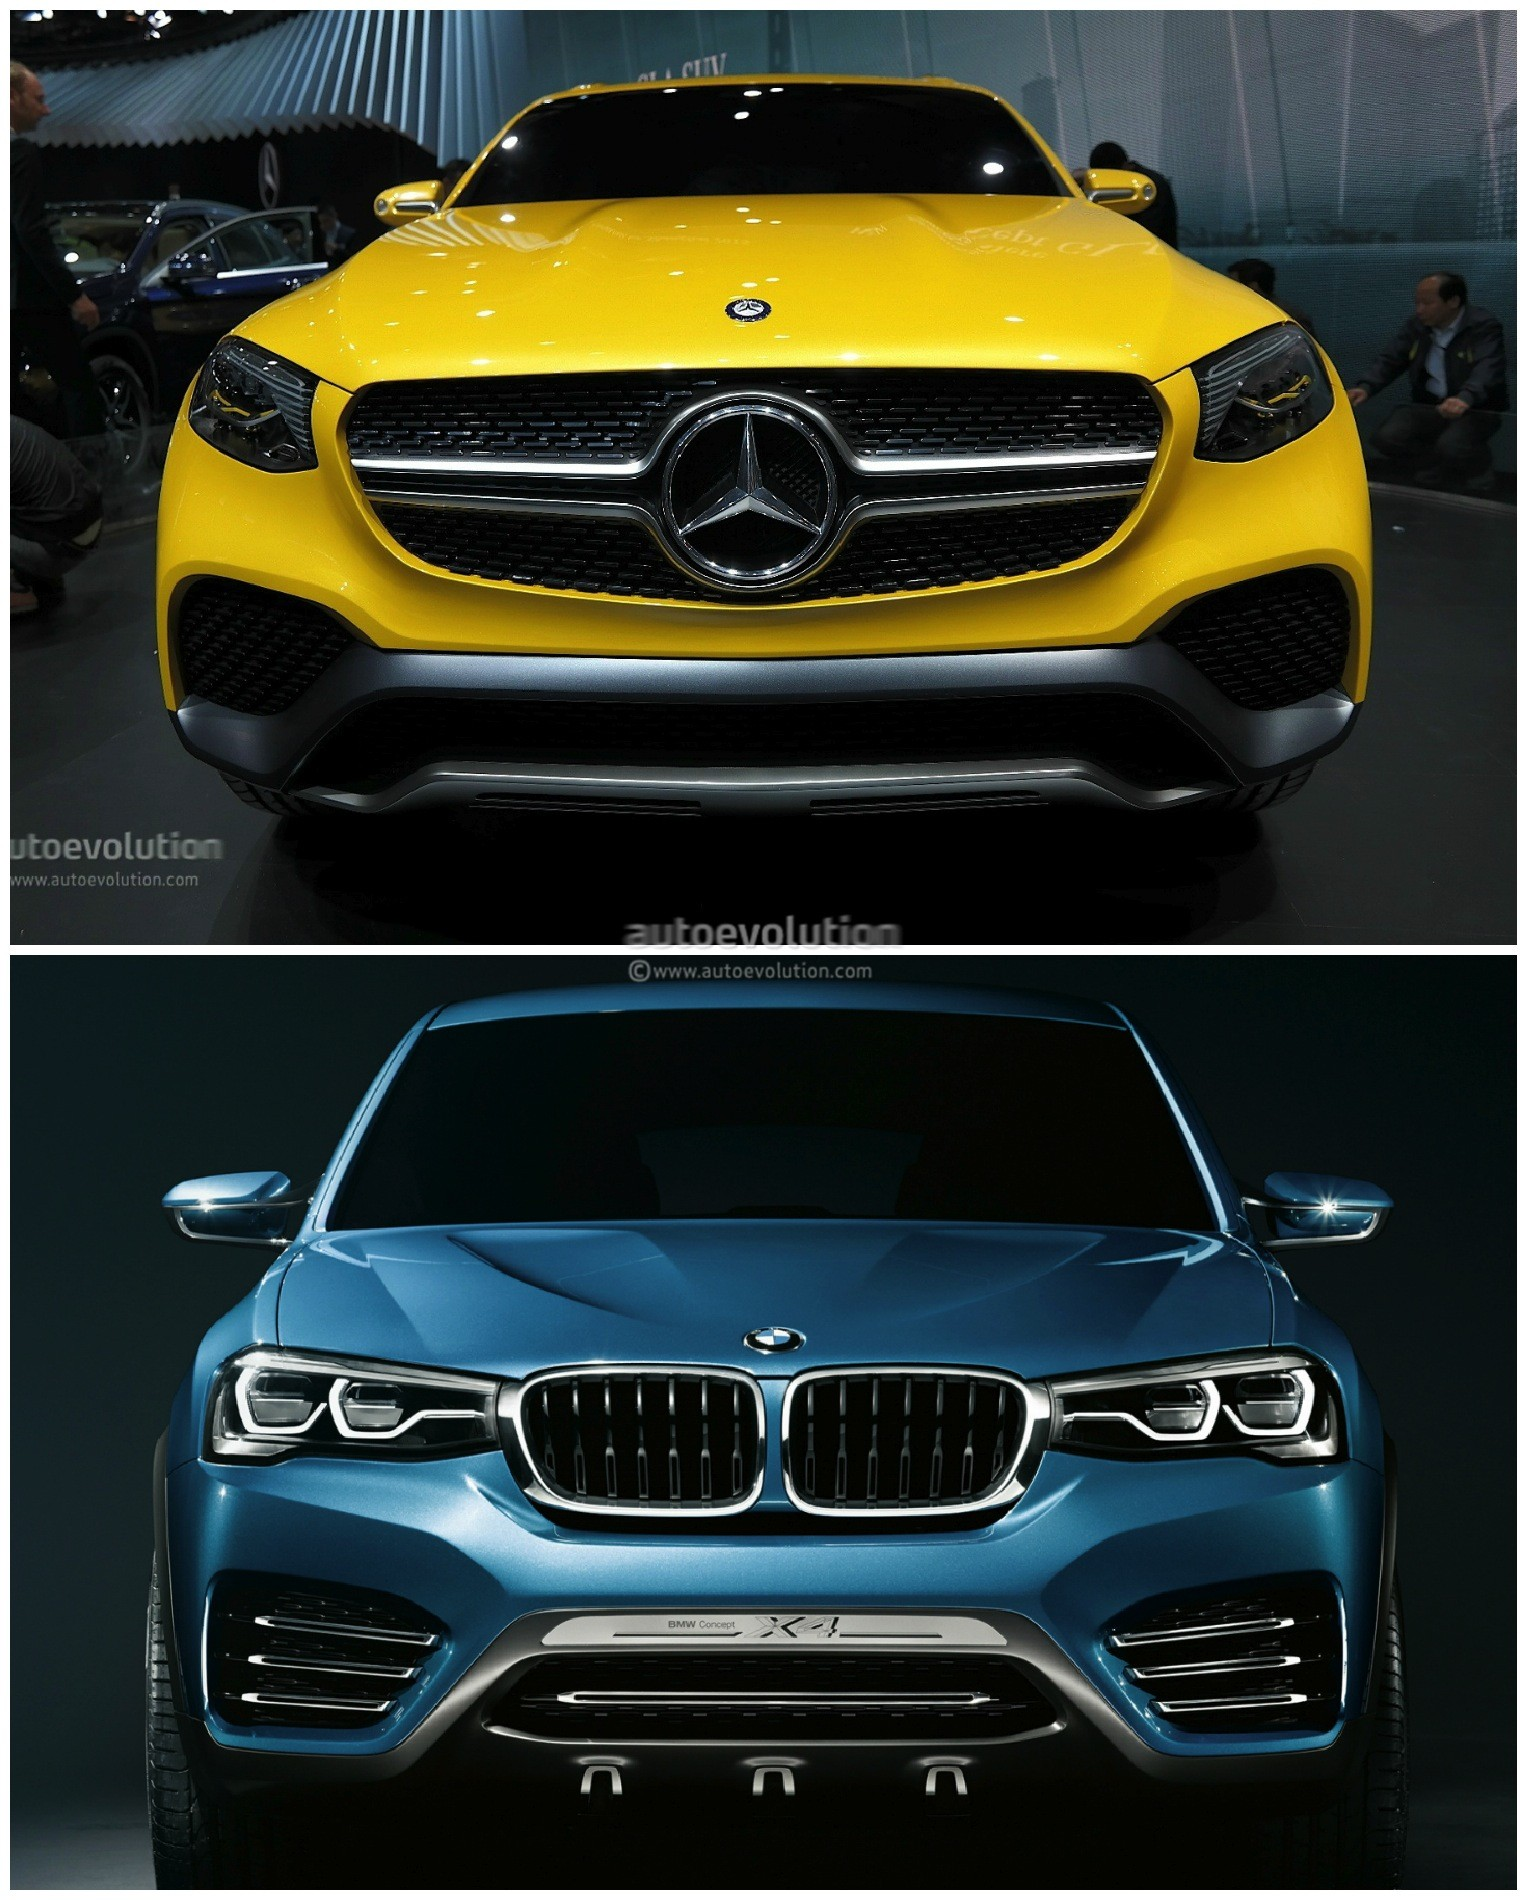 Bmw Sports Coupe: Mercedes GLC Coupe Vs. BMW X4: The Sports Activity Coupe